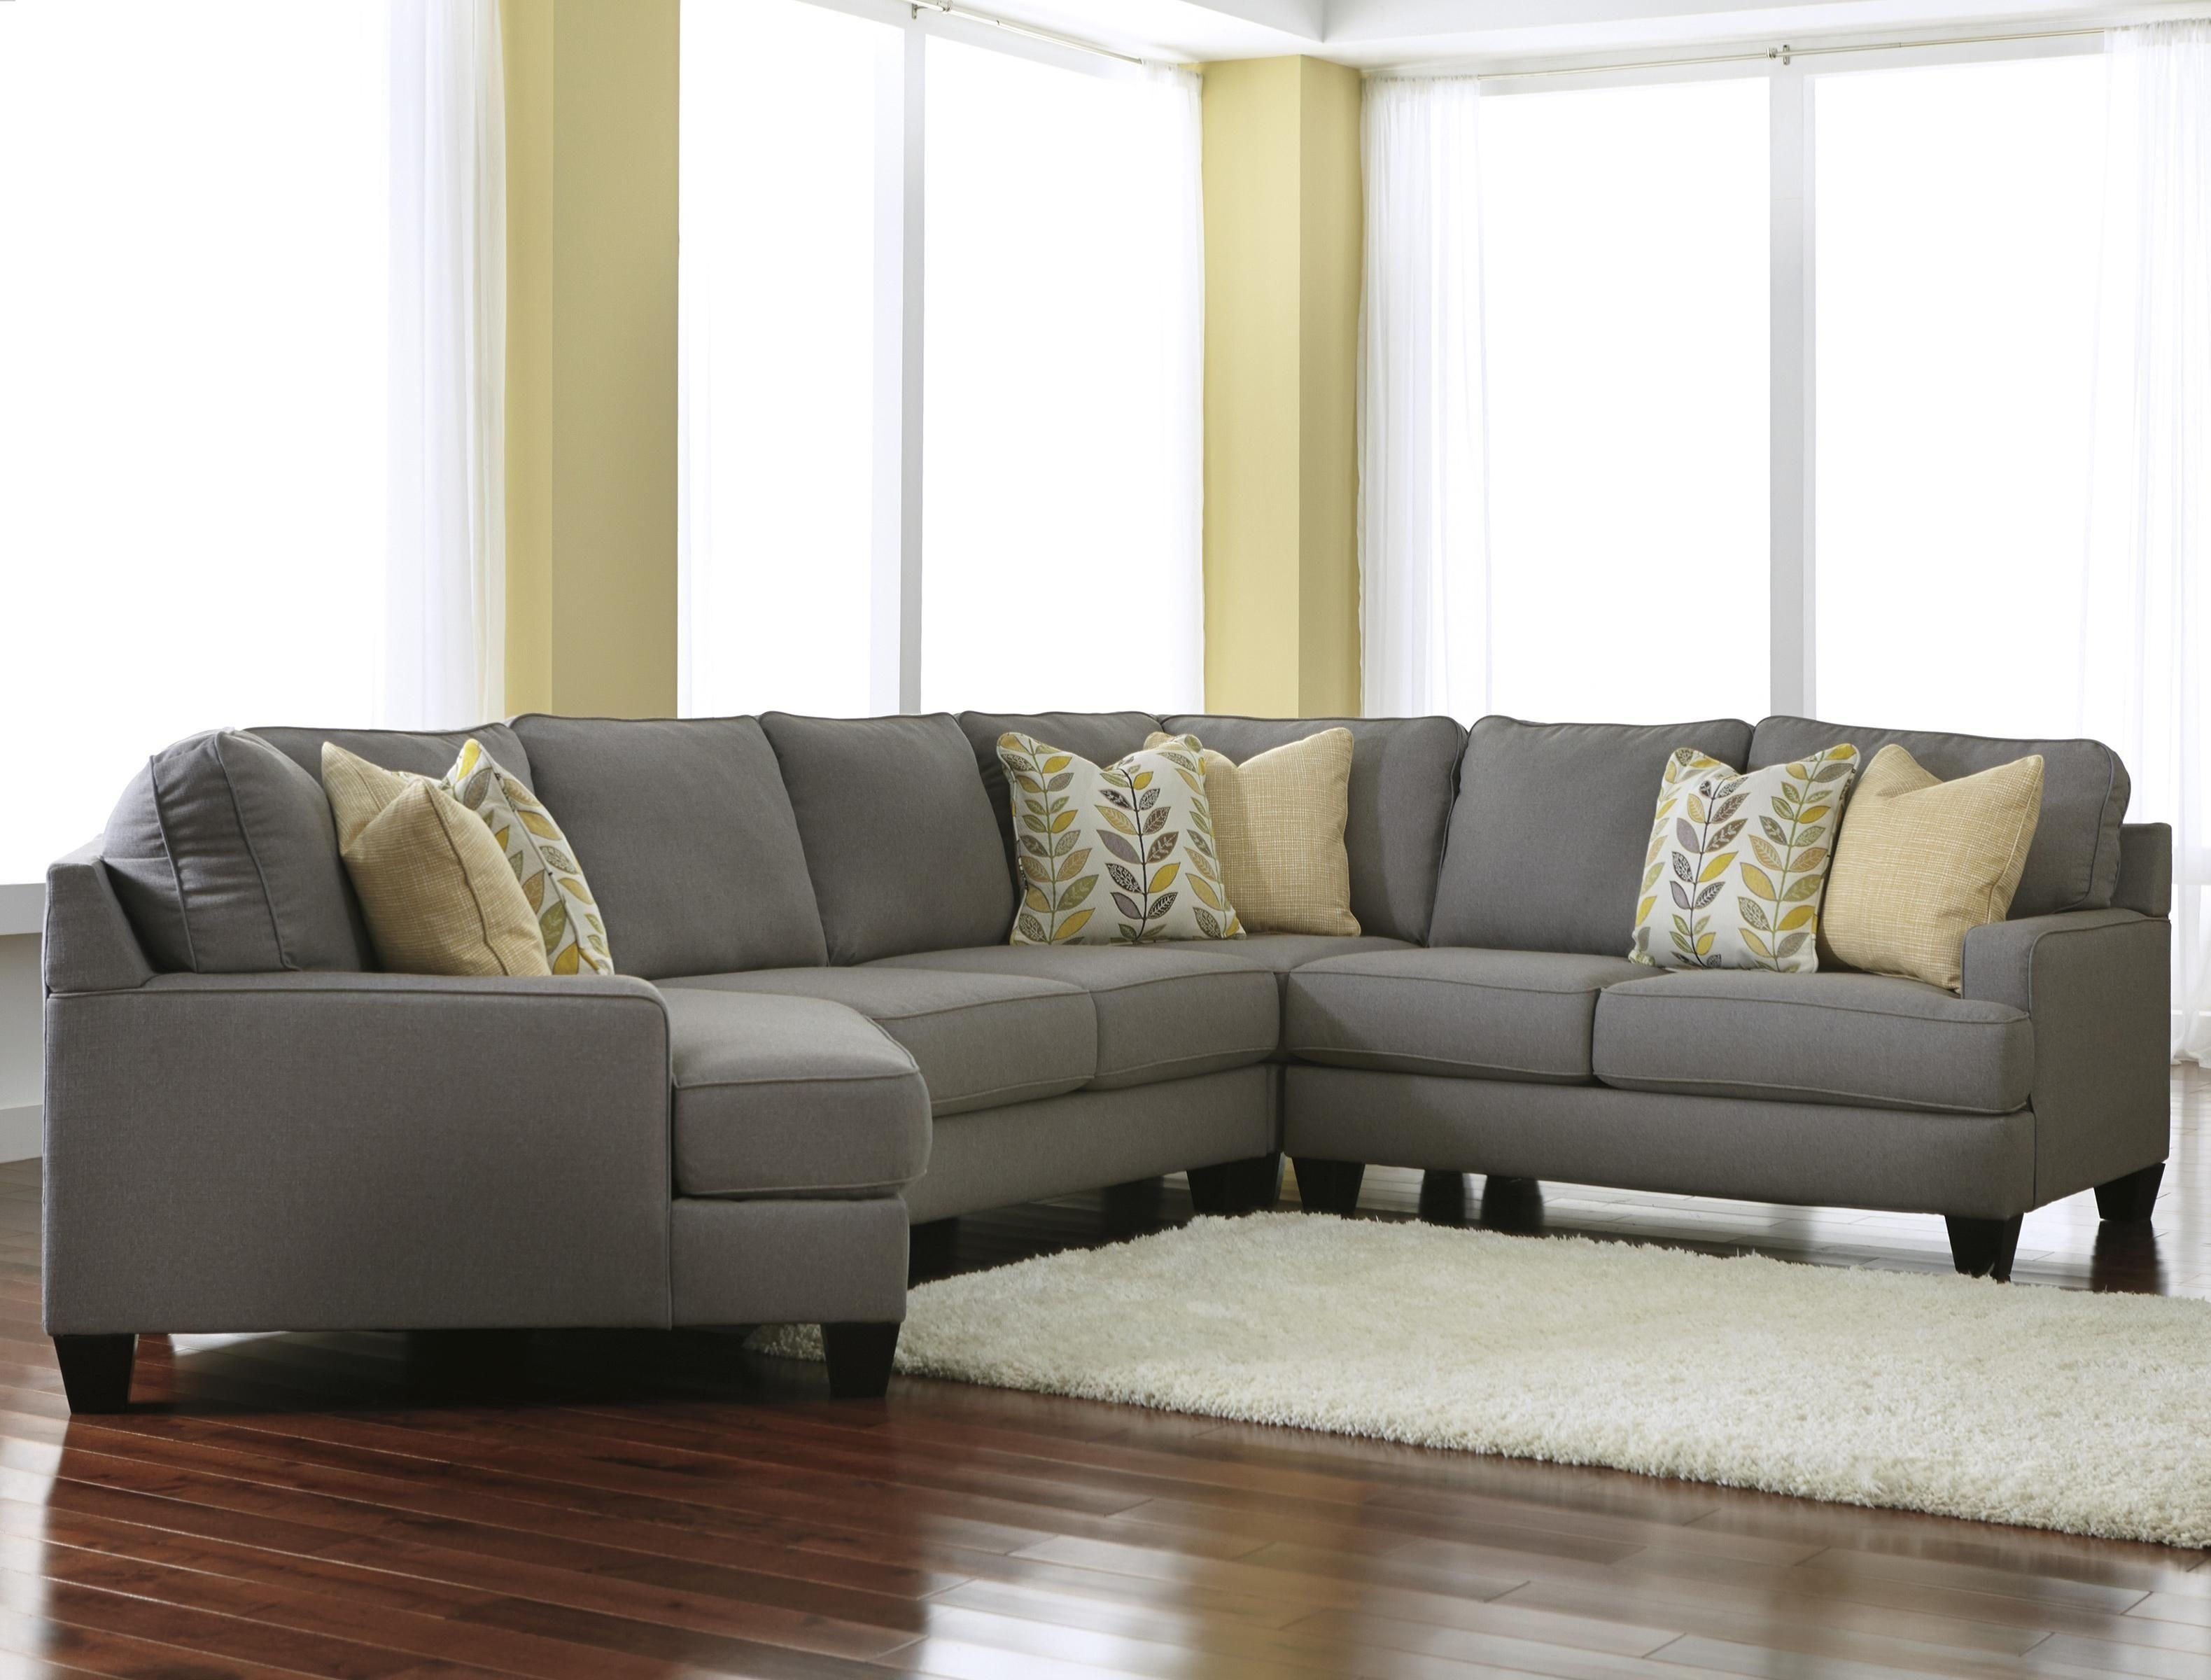 Furniture : Couch Sales New Sofas & Sectionals Living Room Furniture For Dillards Sectional Sofas (Image 6 of 10)